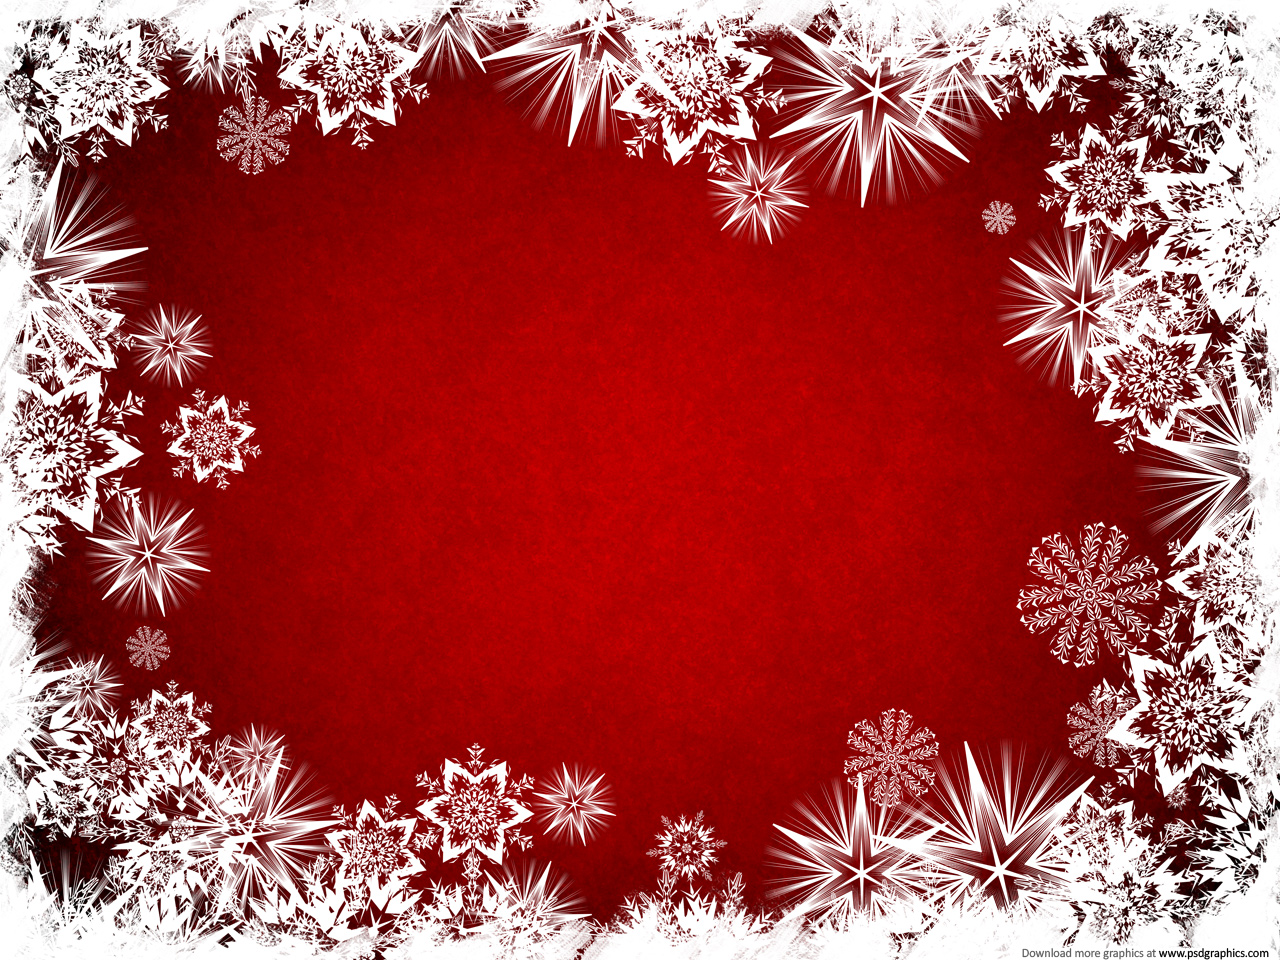 Medium size preview (1280x960px): Abstract Christmas background